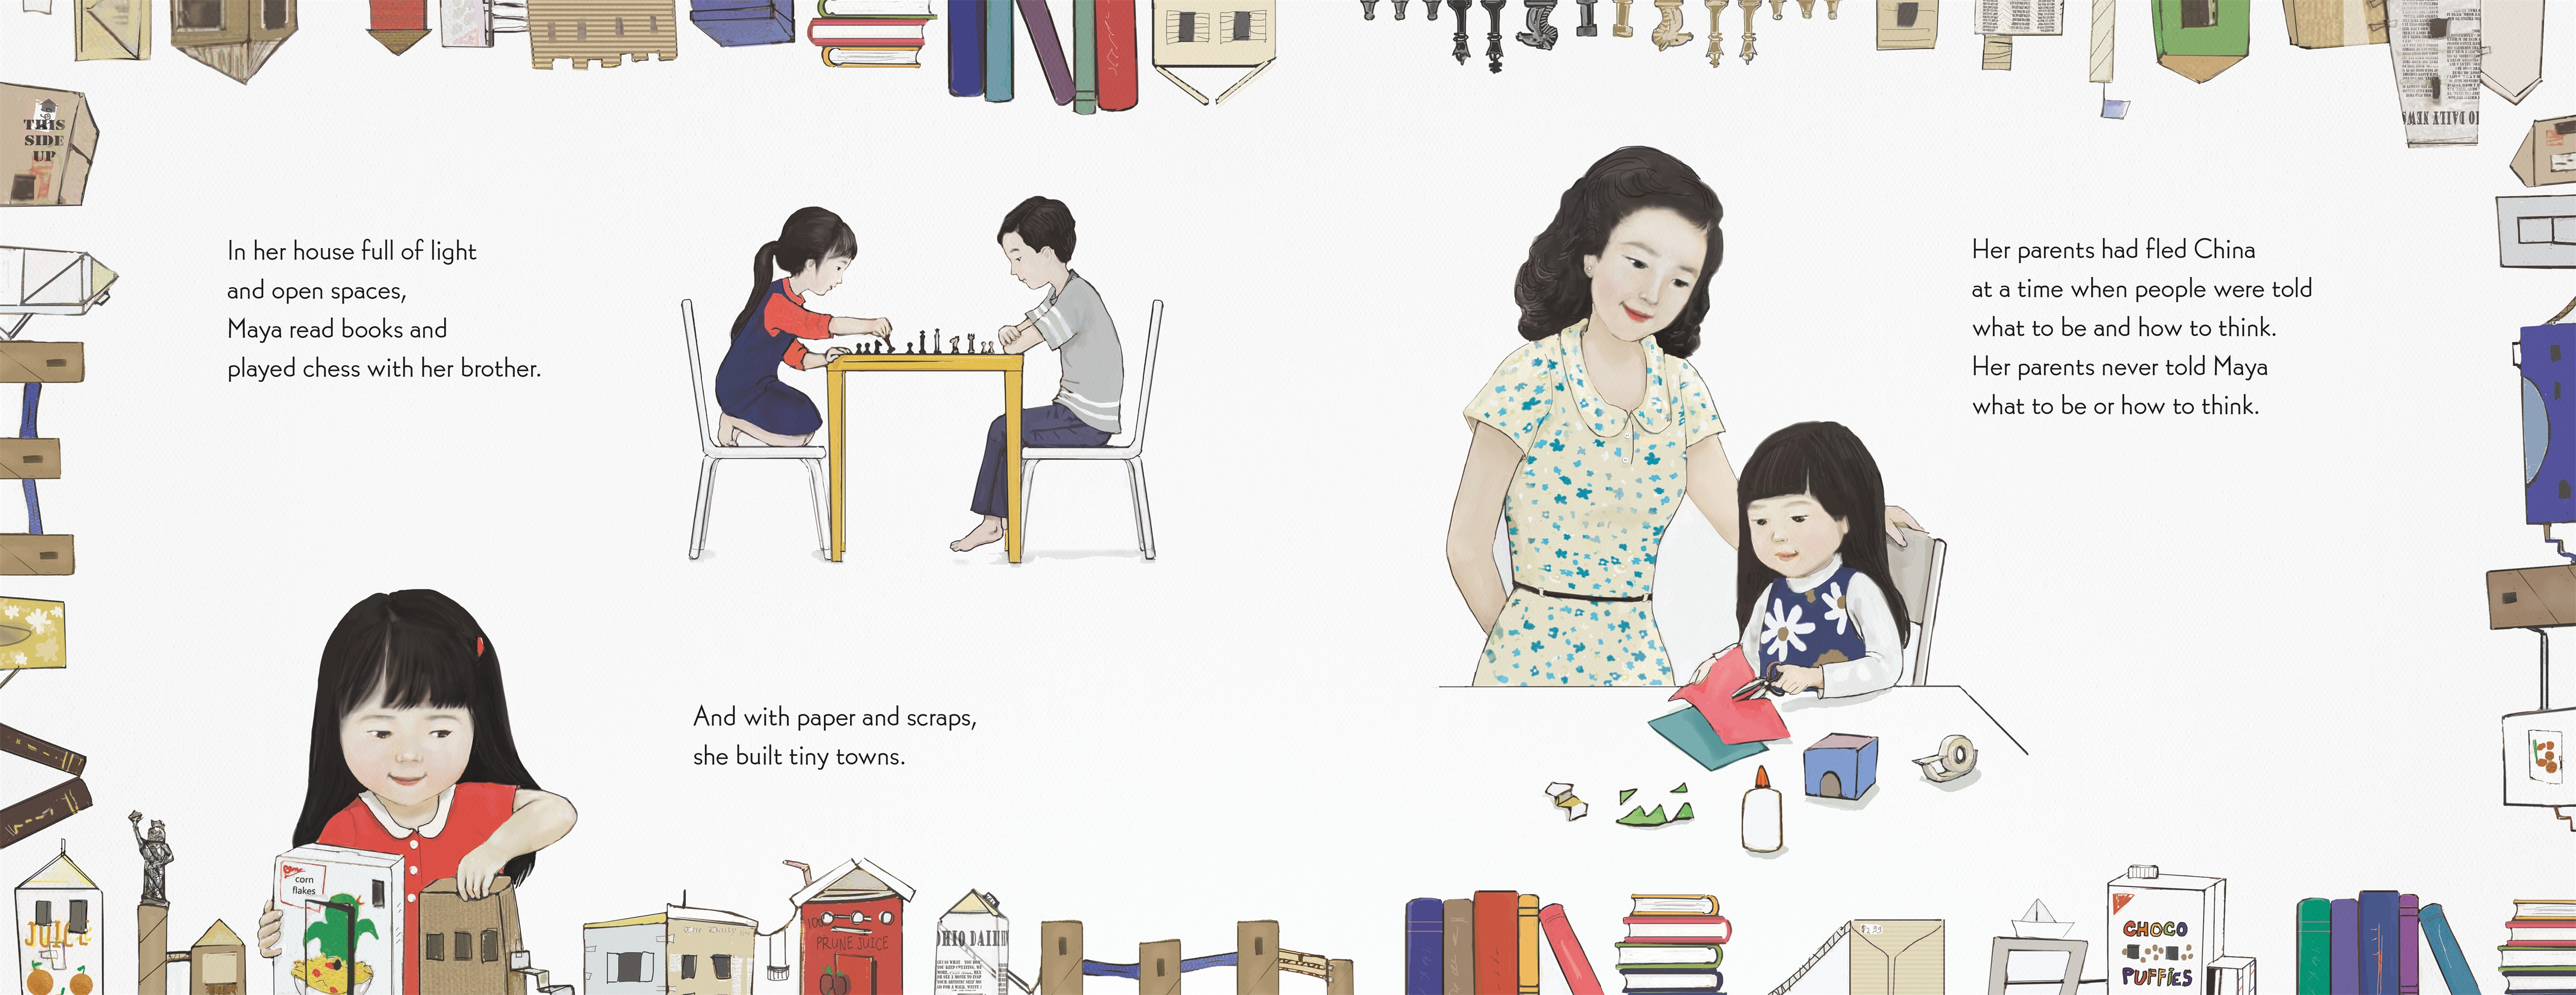 celebrate-picture-books-picture-book-review-maya-lin-artist-architect-of-light-and-lines-as-young-girl